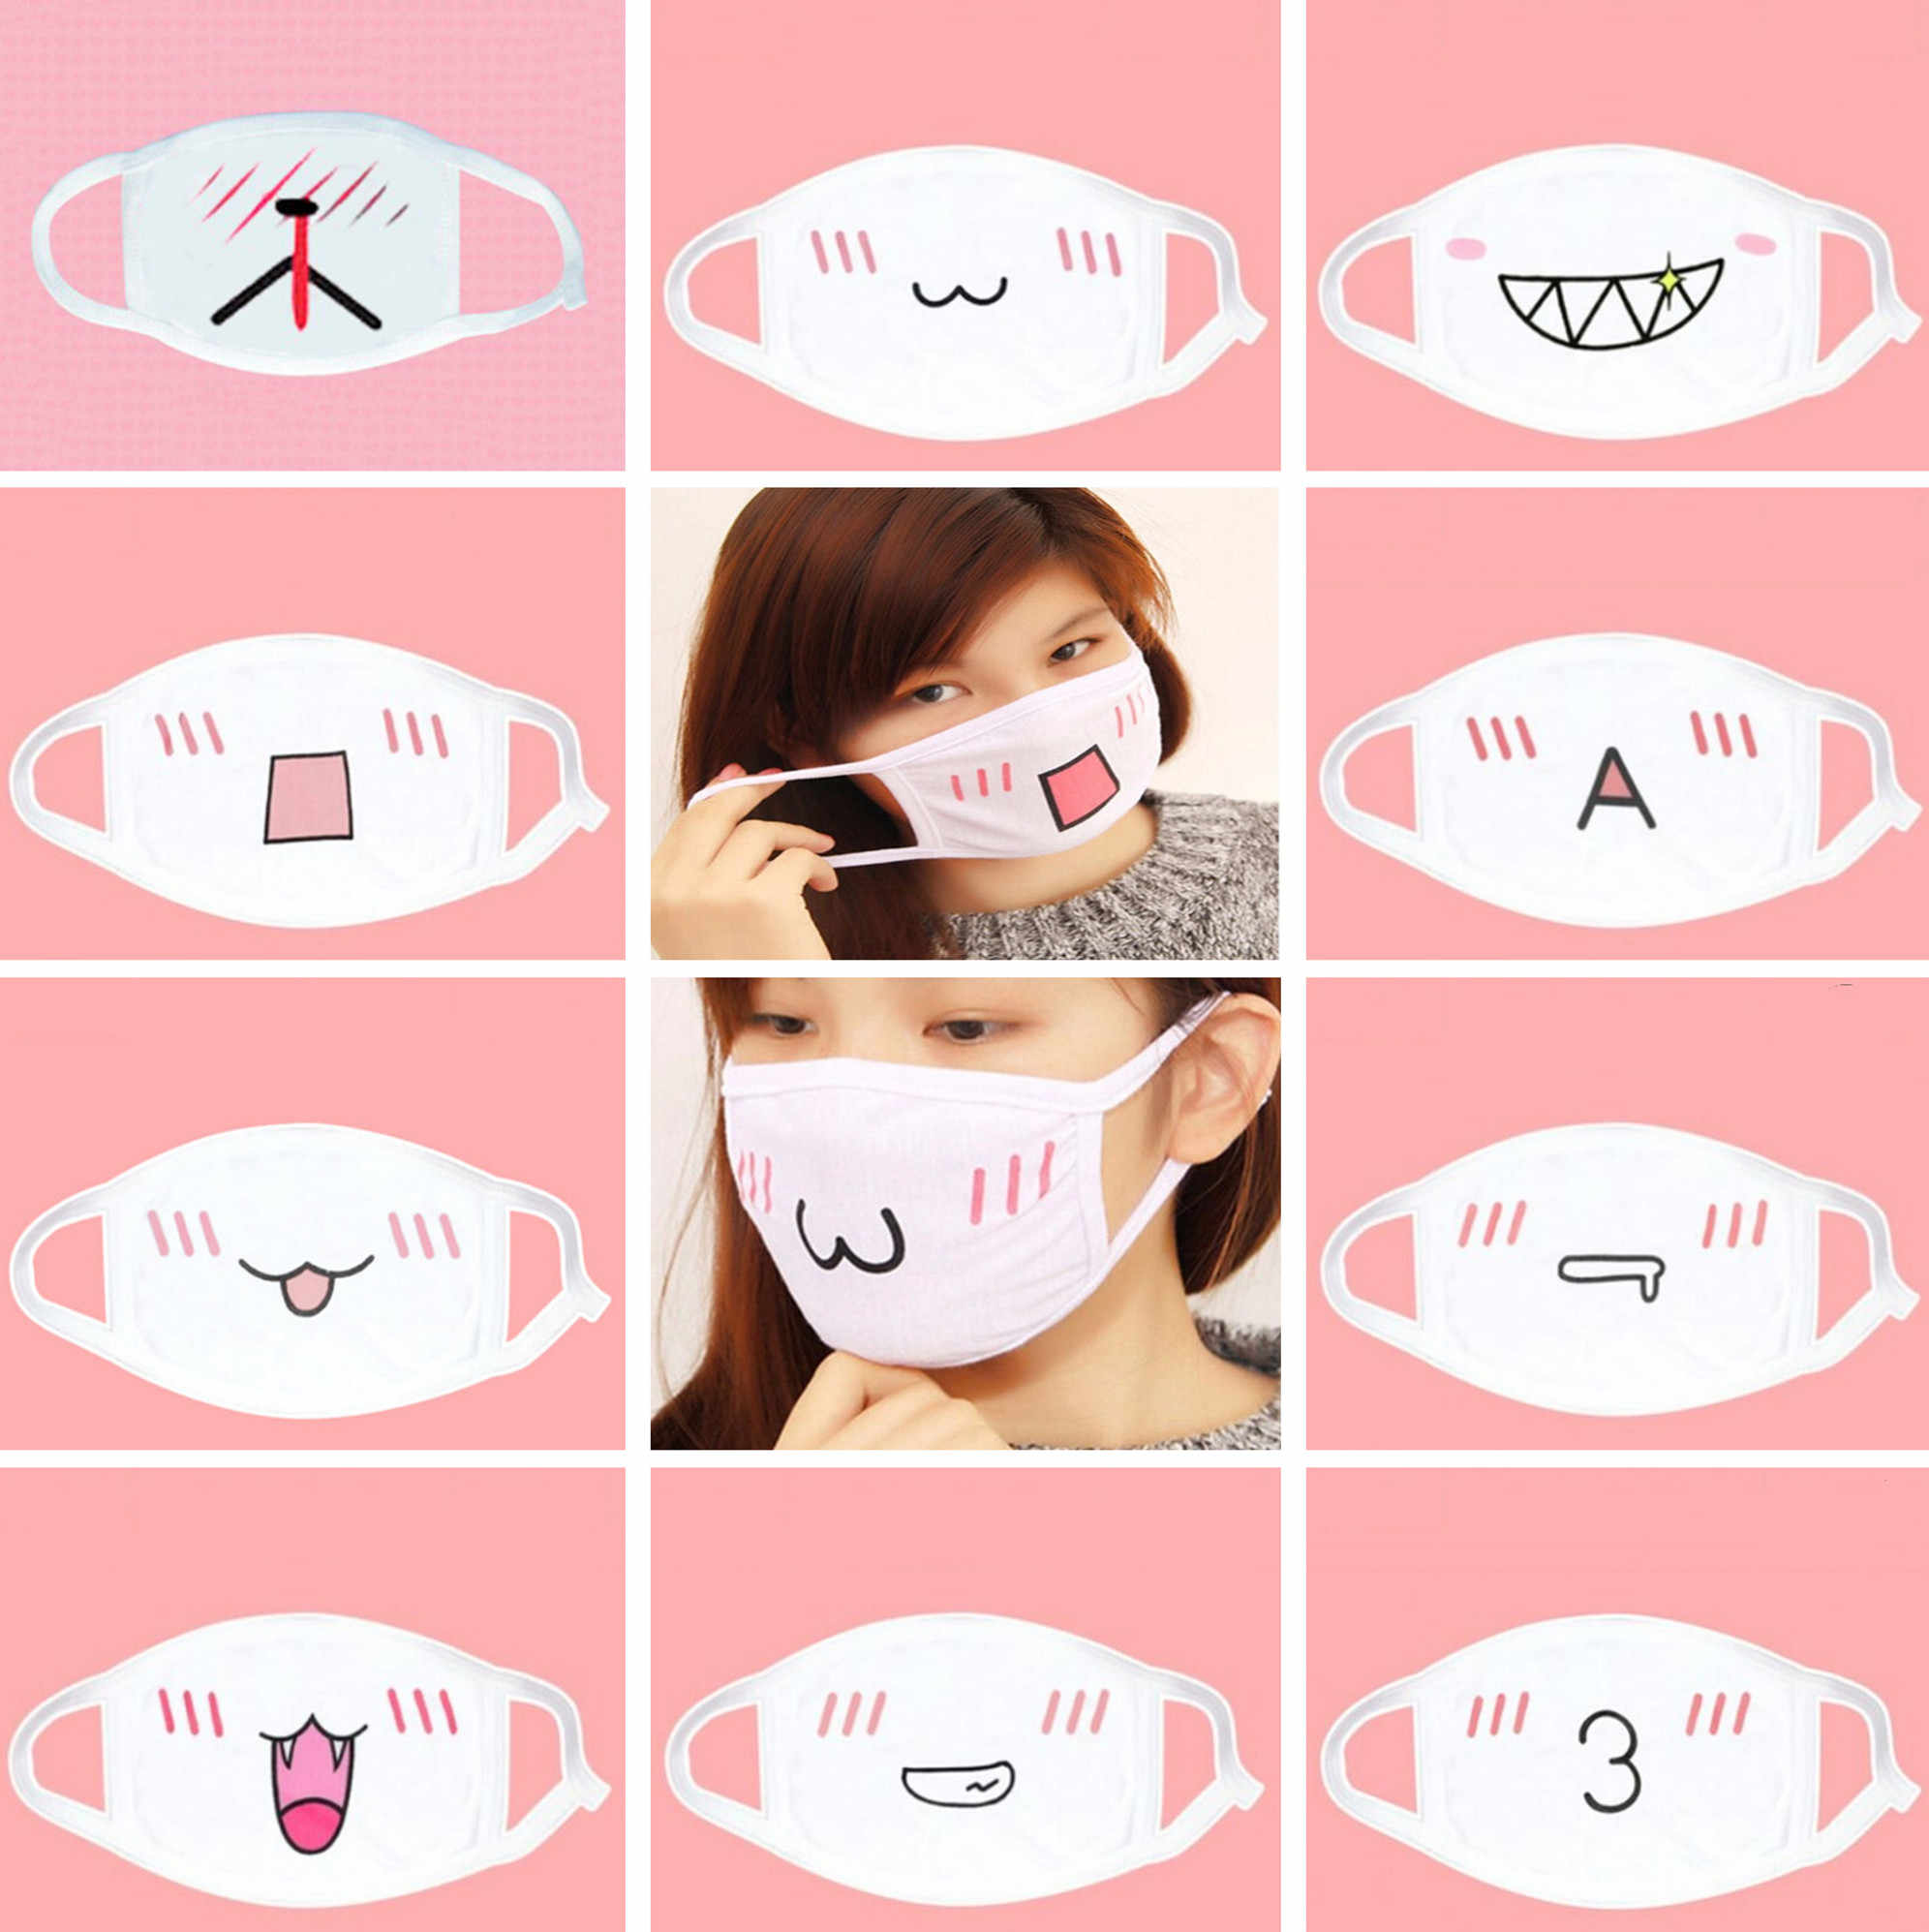 Hot Kawaii Anti Dust Mask Kpop Cotton Mouth Mask Cute Anime Cartoon Mouth Muffle Face Sexy Mask Emotiction Masque Kpop Masks